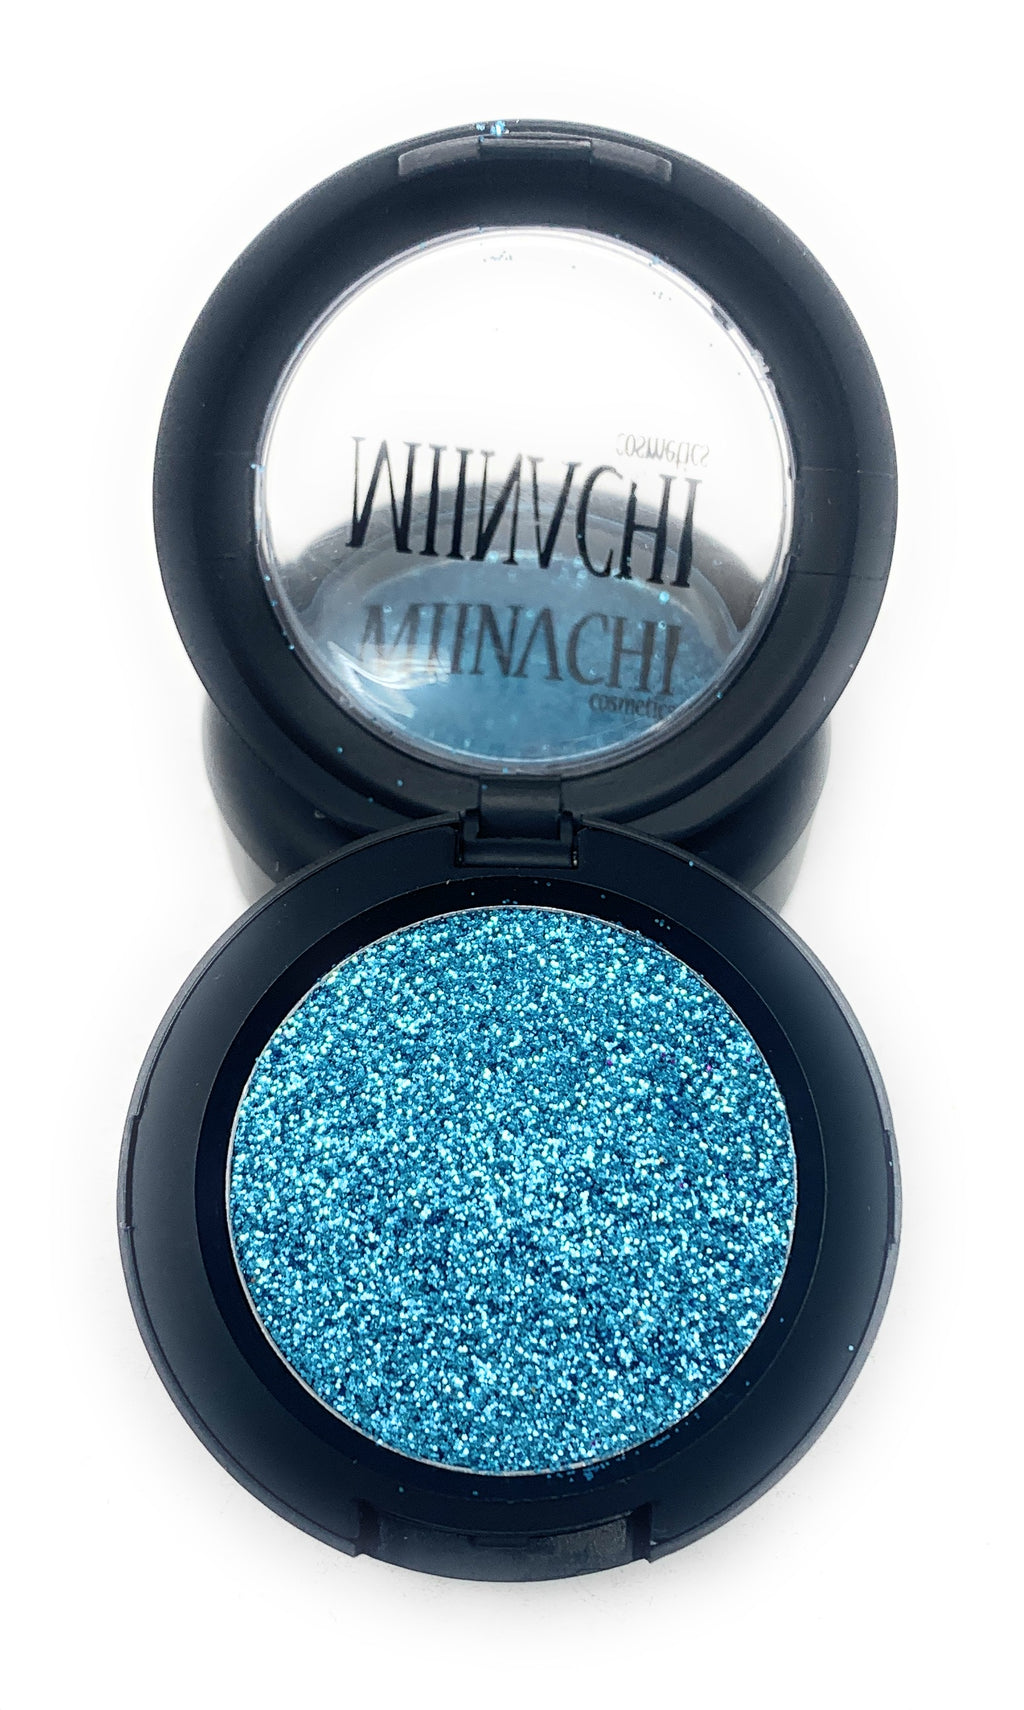 Single Pressed Glitter in the shade Aqua JUMBO Sized, No Glue Needed, In Compact, Pigmented, No Fall Out, Glitter, Cosmetic Grade Glitter